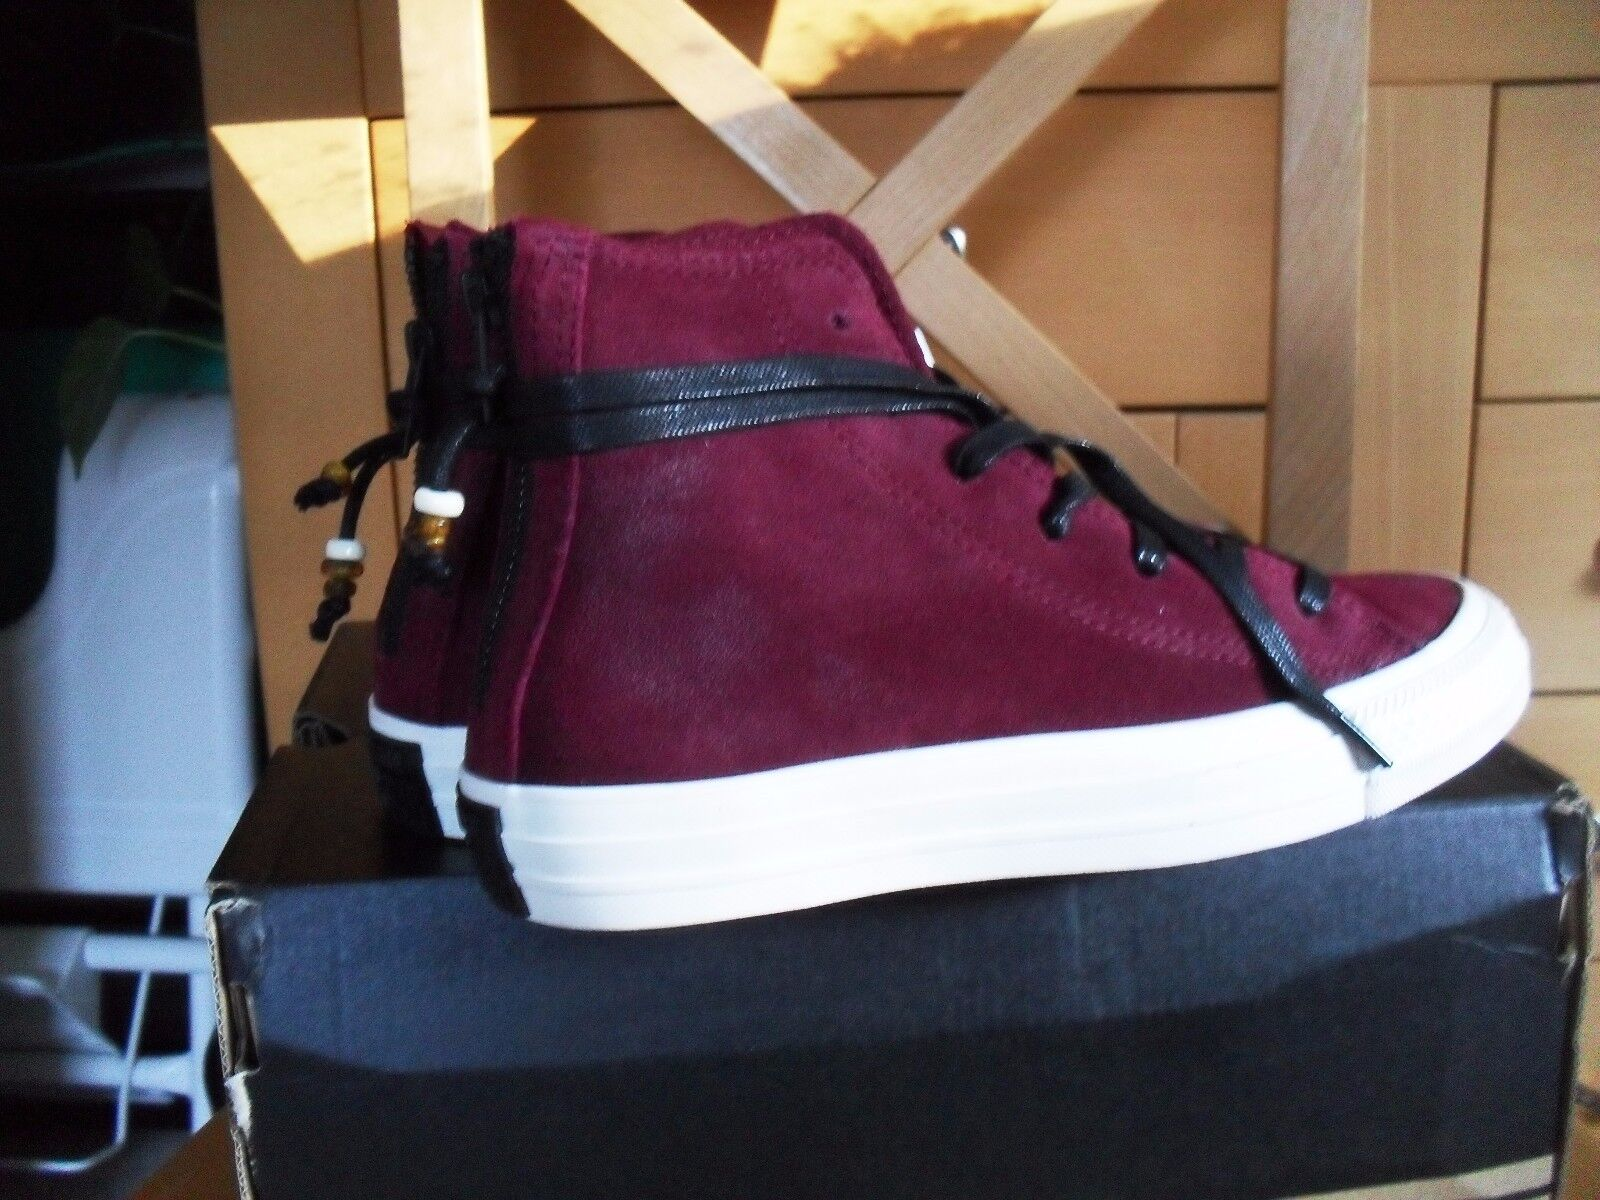 ♥♥ Converse ♥♥ Chuck Taylor All Star Gr. 36 Adulte Burnished Hi bordeaux rot NEU